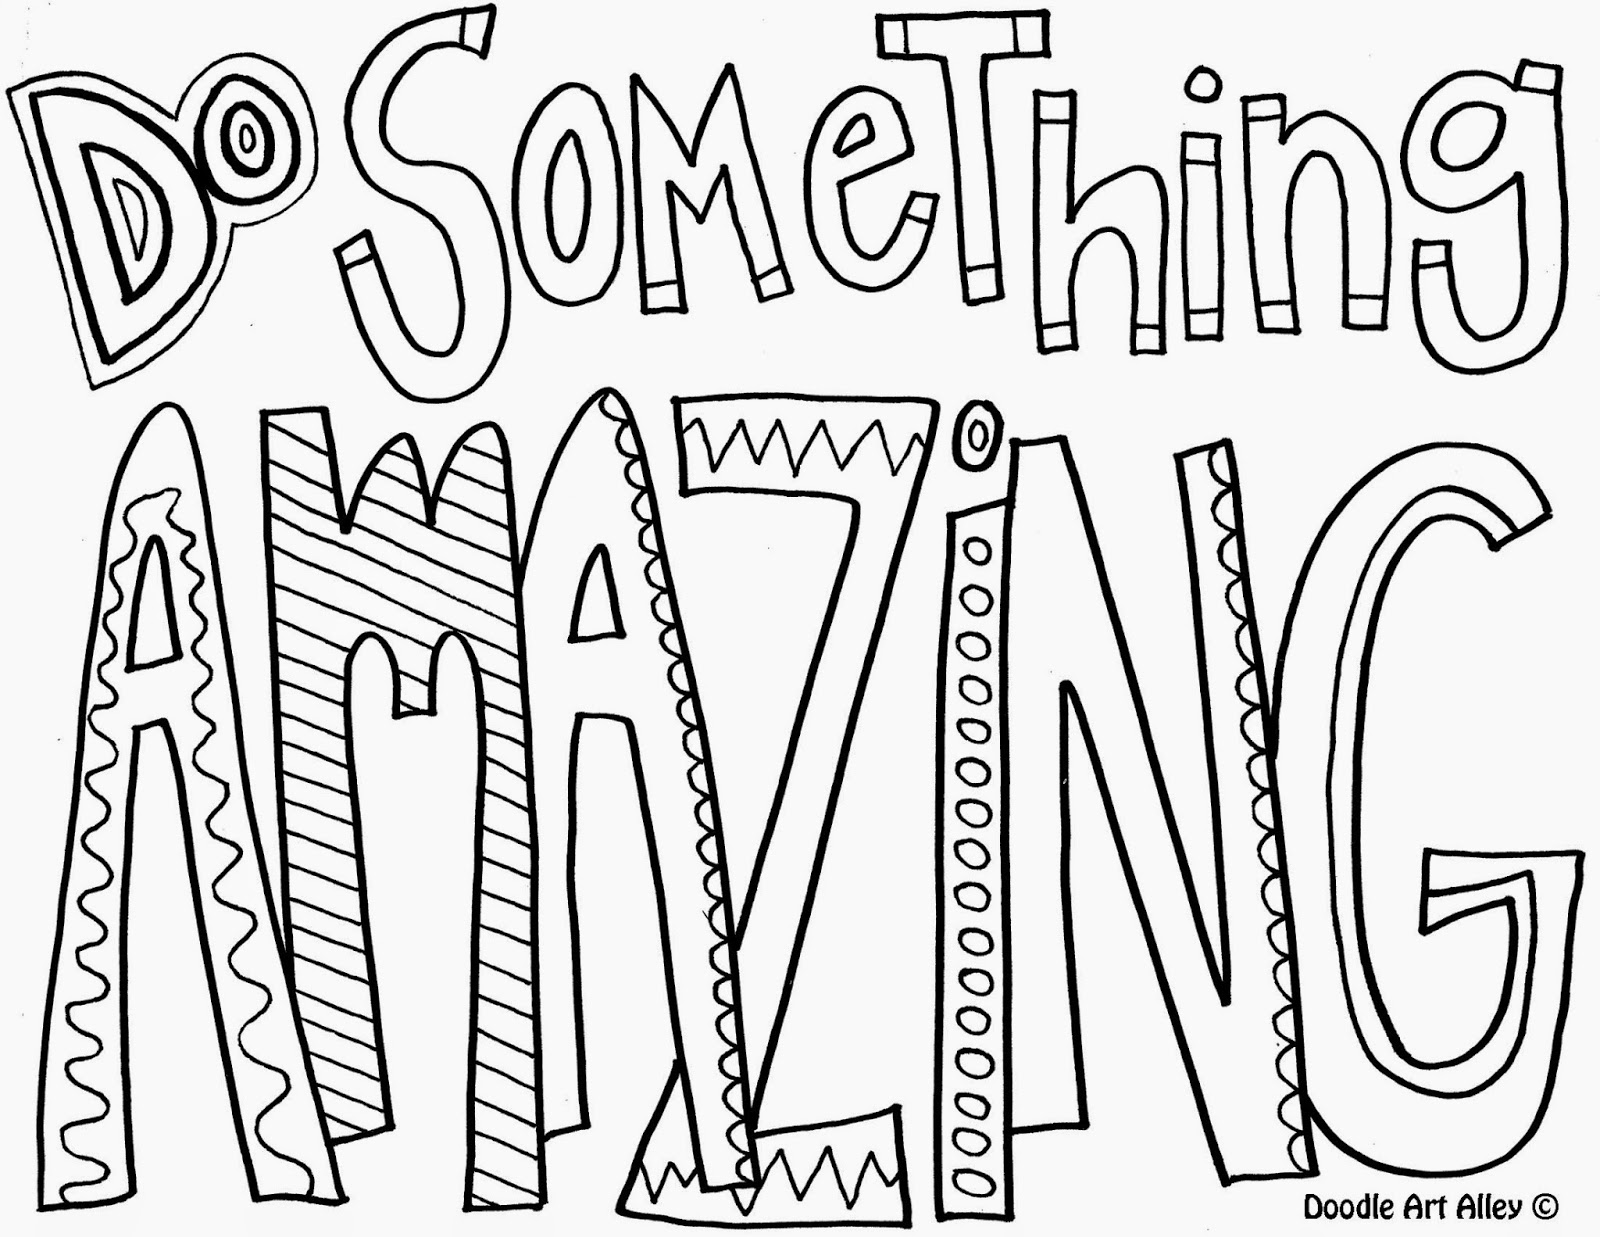 Do something amazing - Quote Coloring Pages